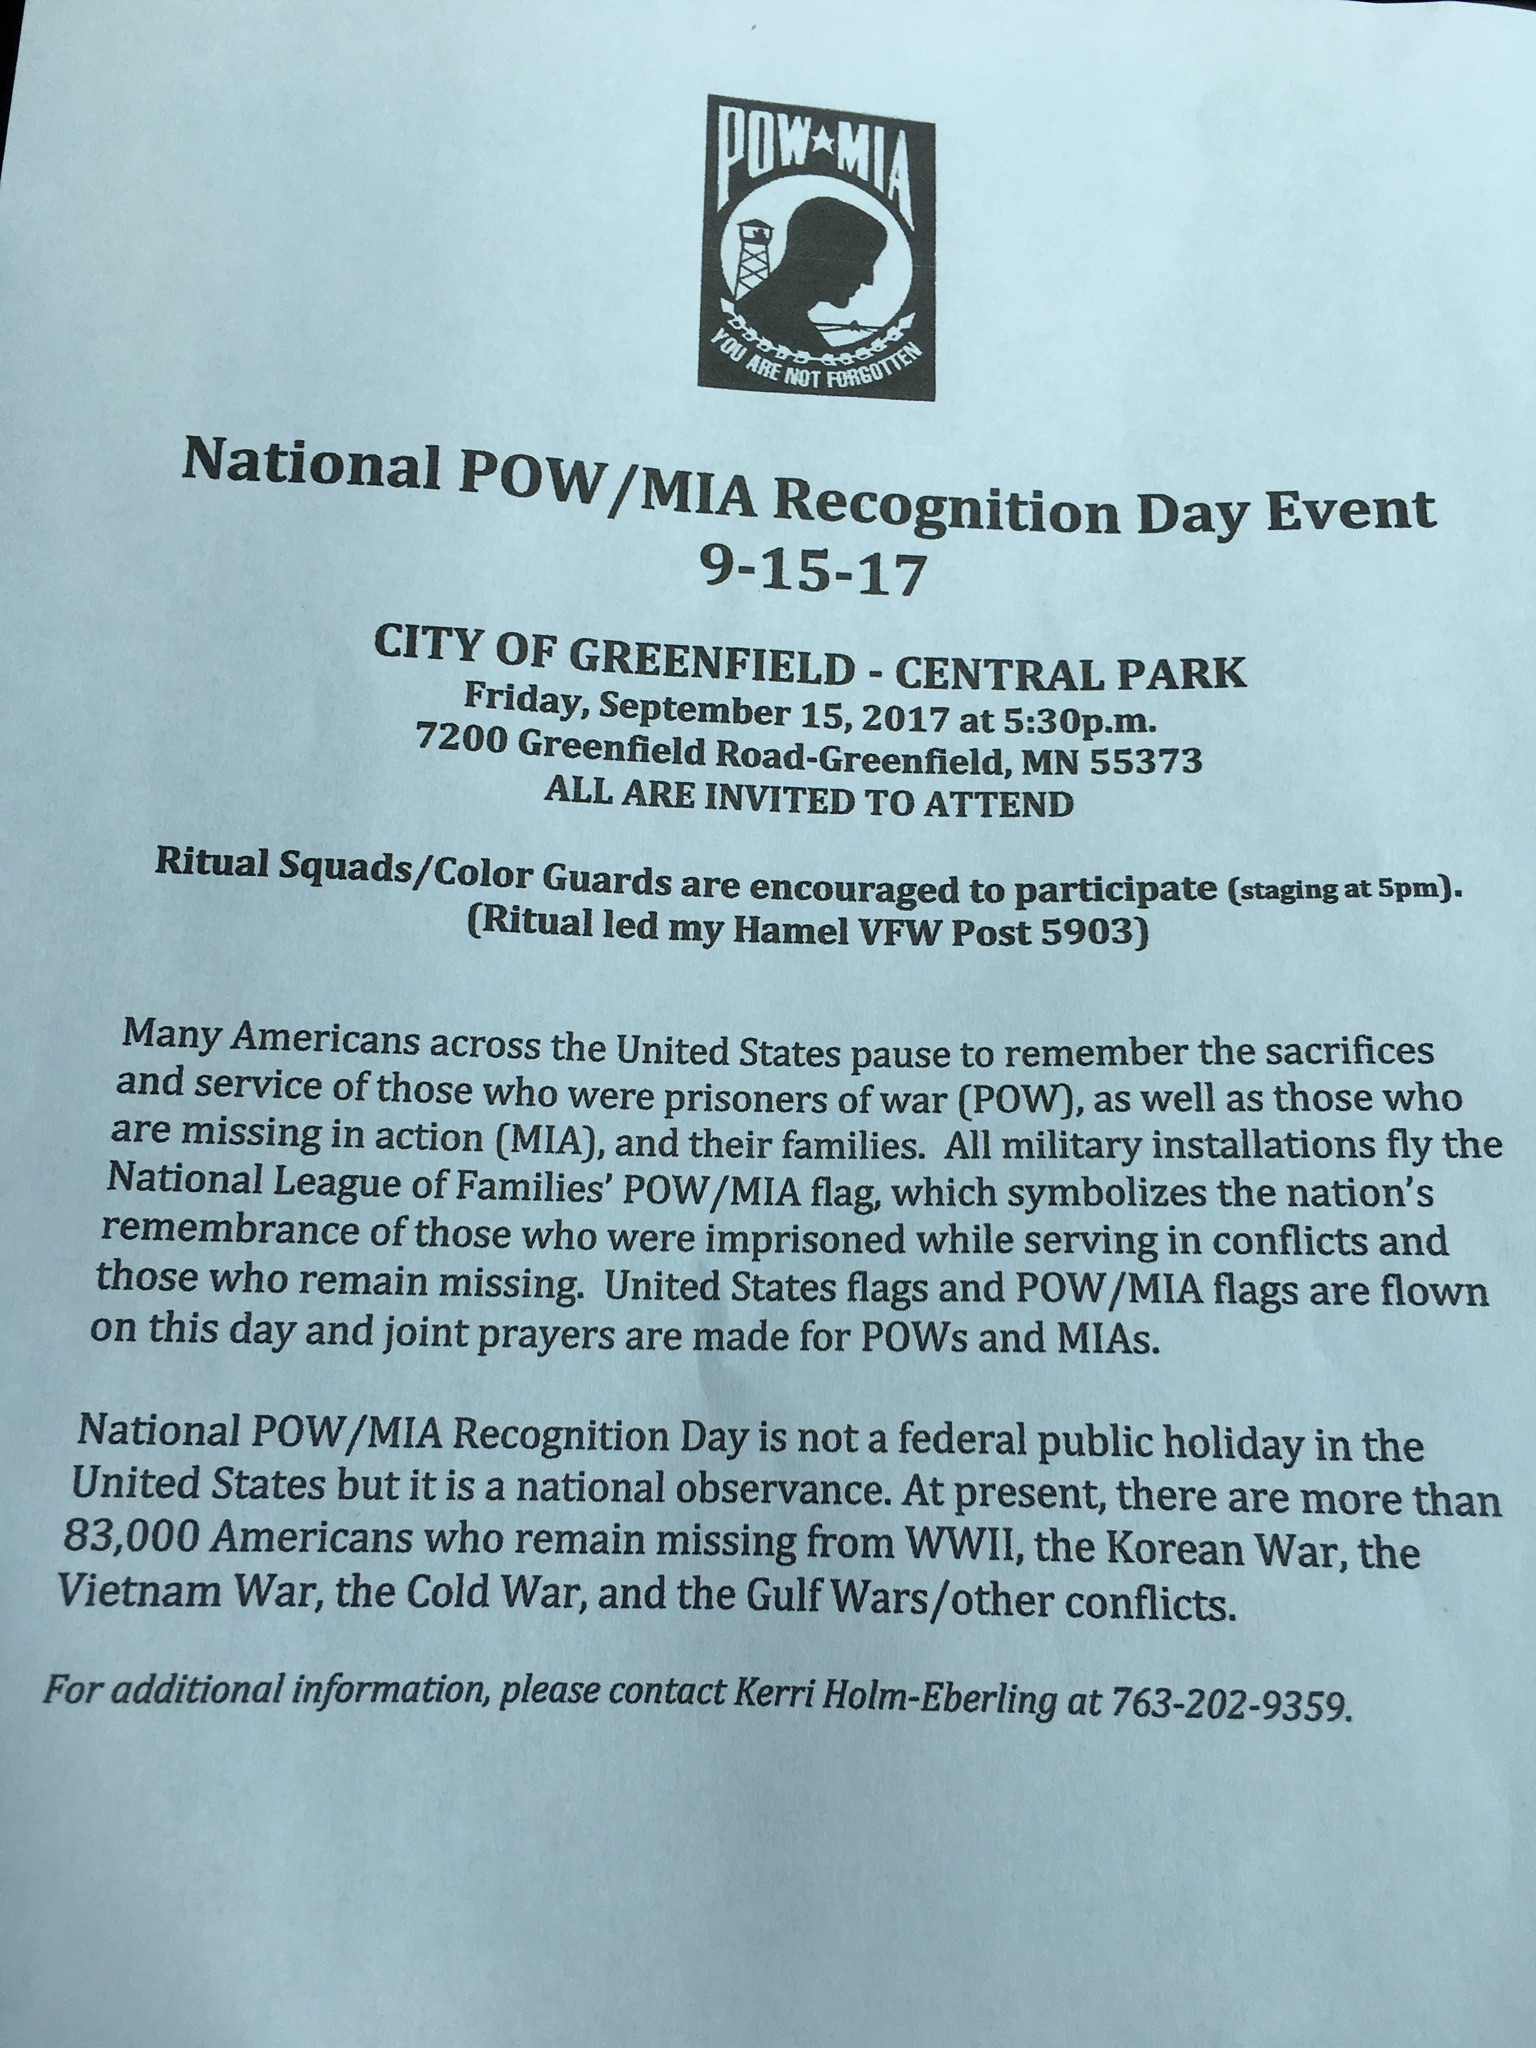 National Pow Mia Recognition Day Event September 15